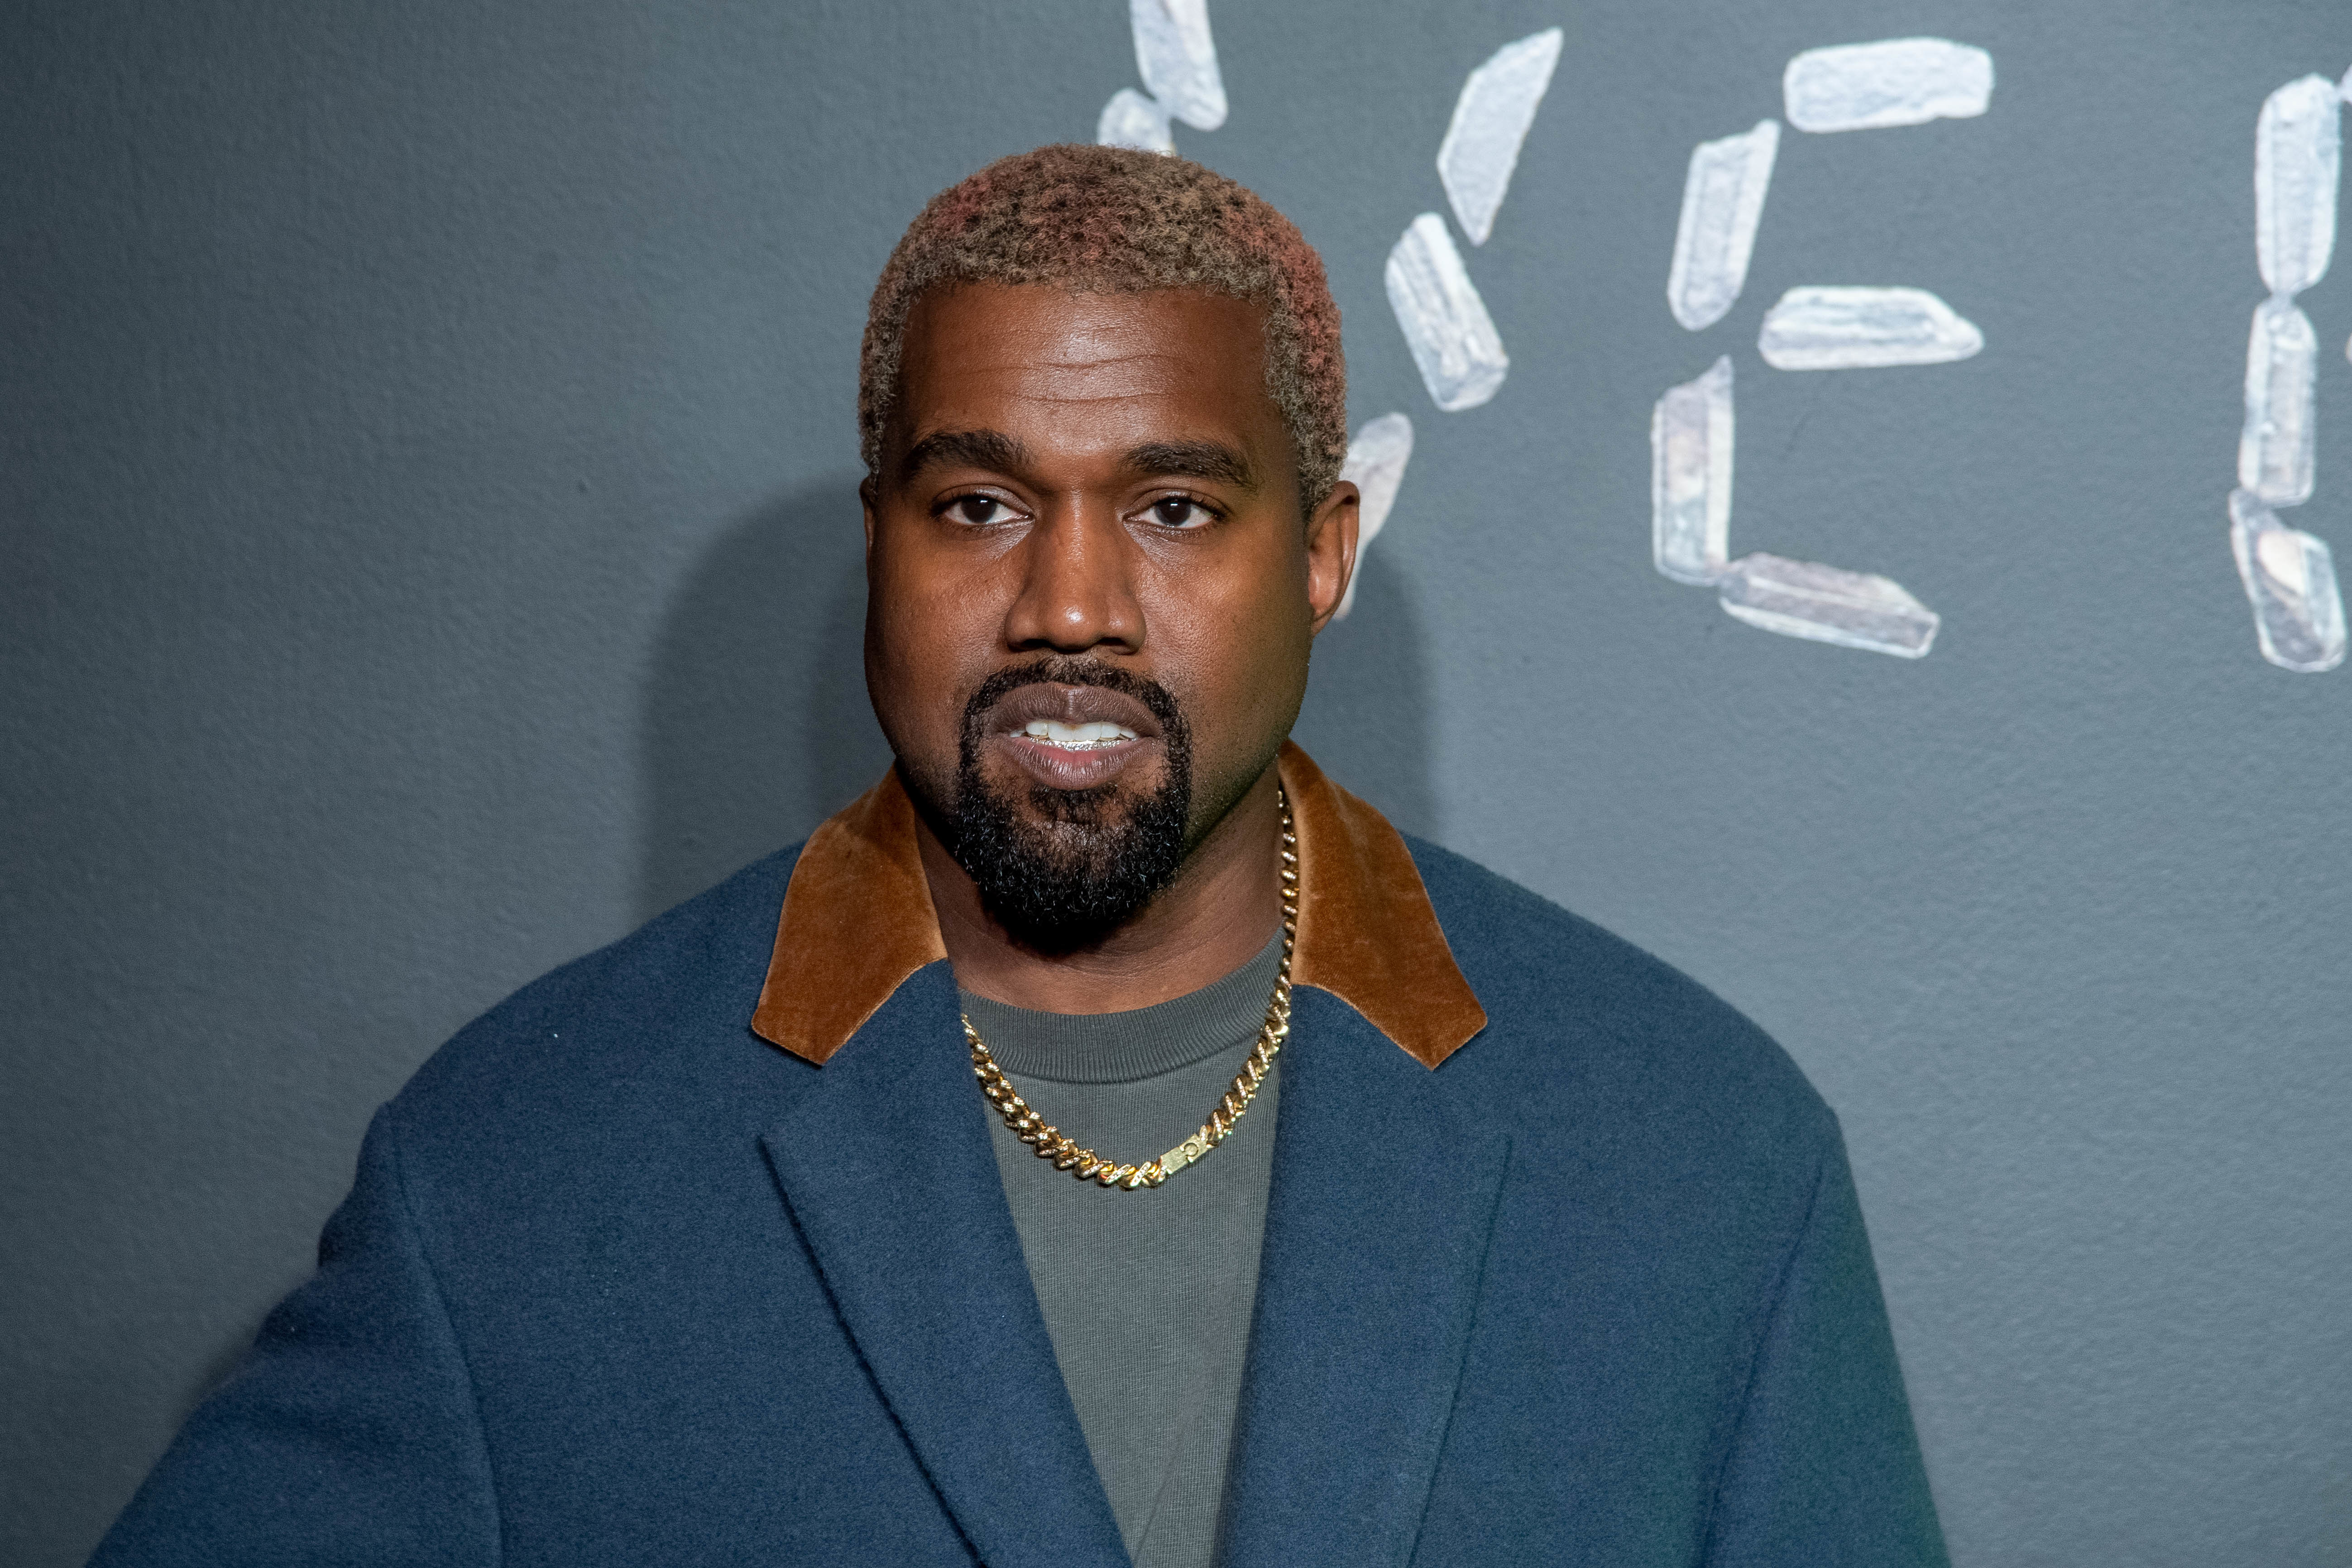 Kanye West attends the the Versace fall 2019 fashion show at the American Stock Exchange Building in lower Manhattan in New York City on Dec. 02, 2018.